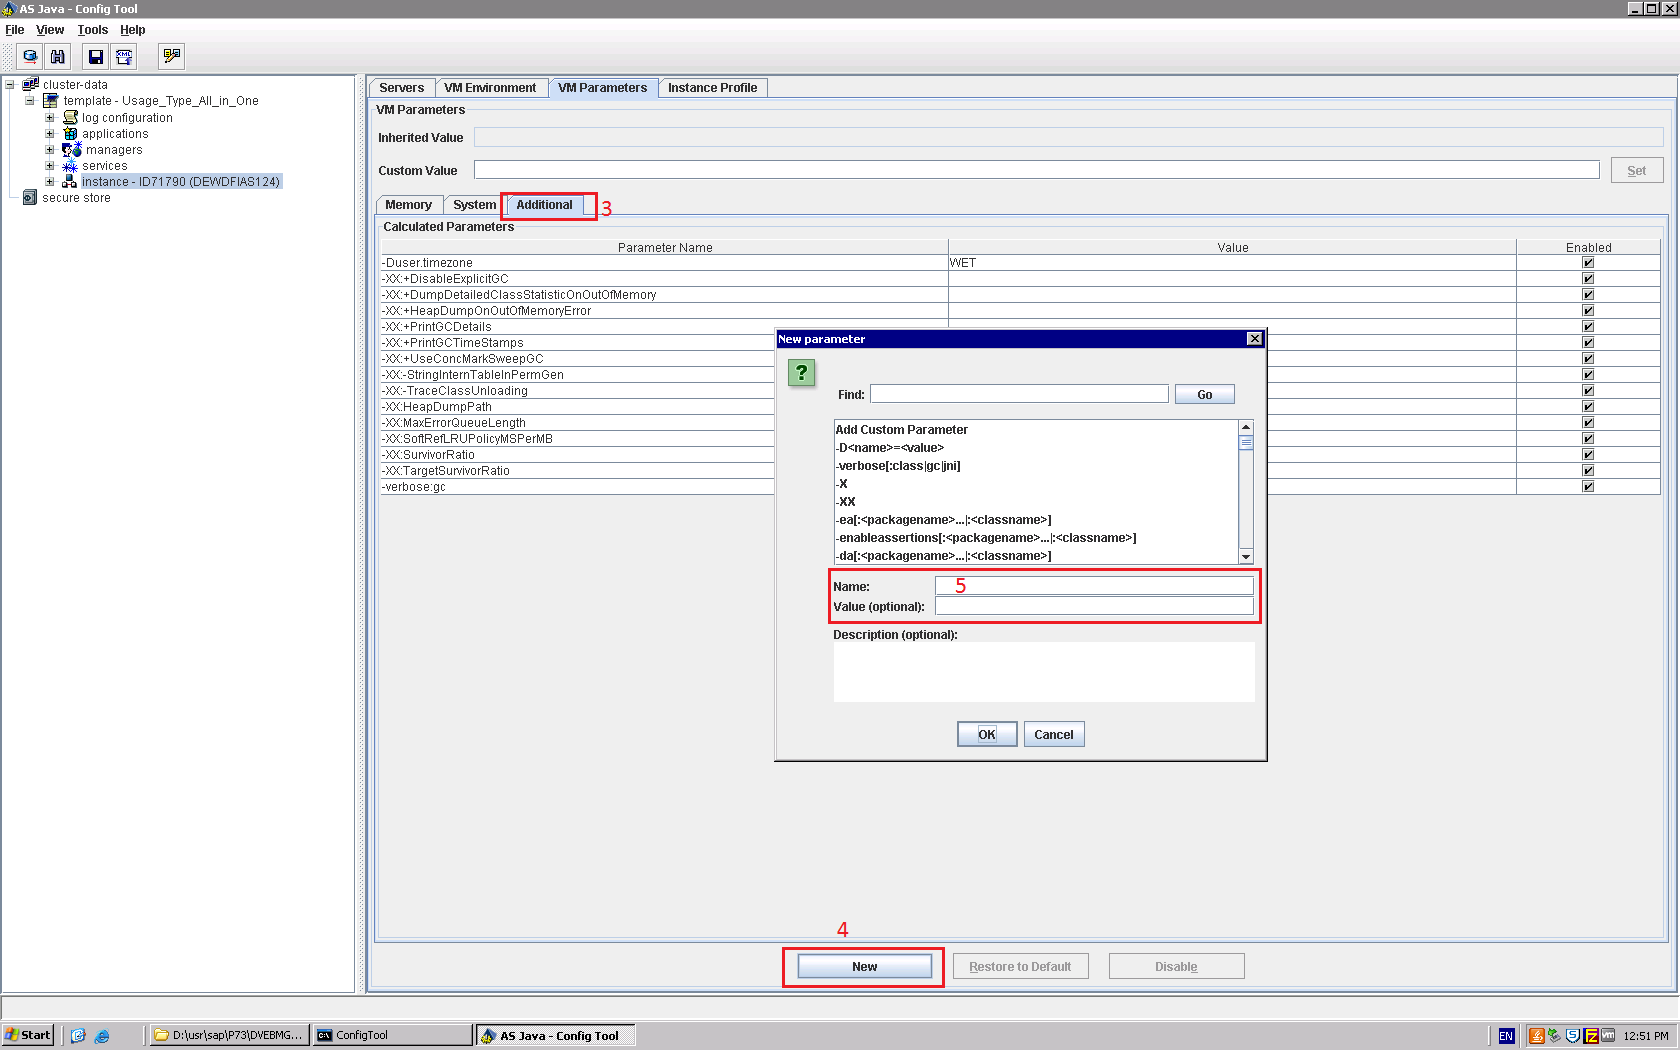 How to disable IBM Websphere MQ logging in PI - Process Integration